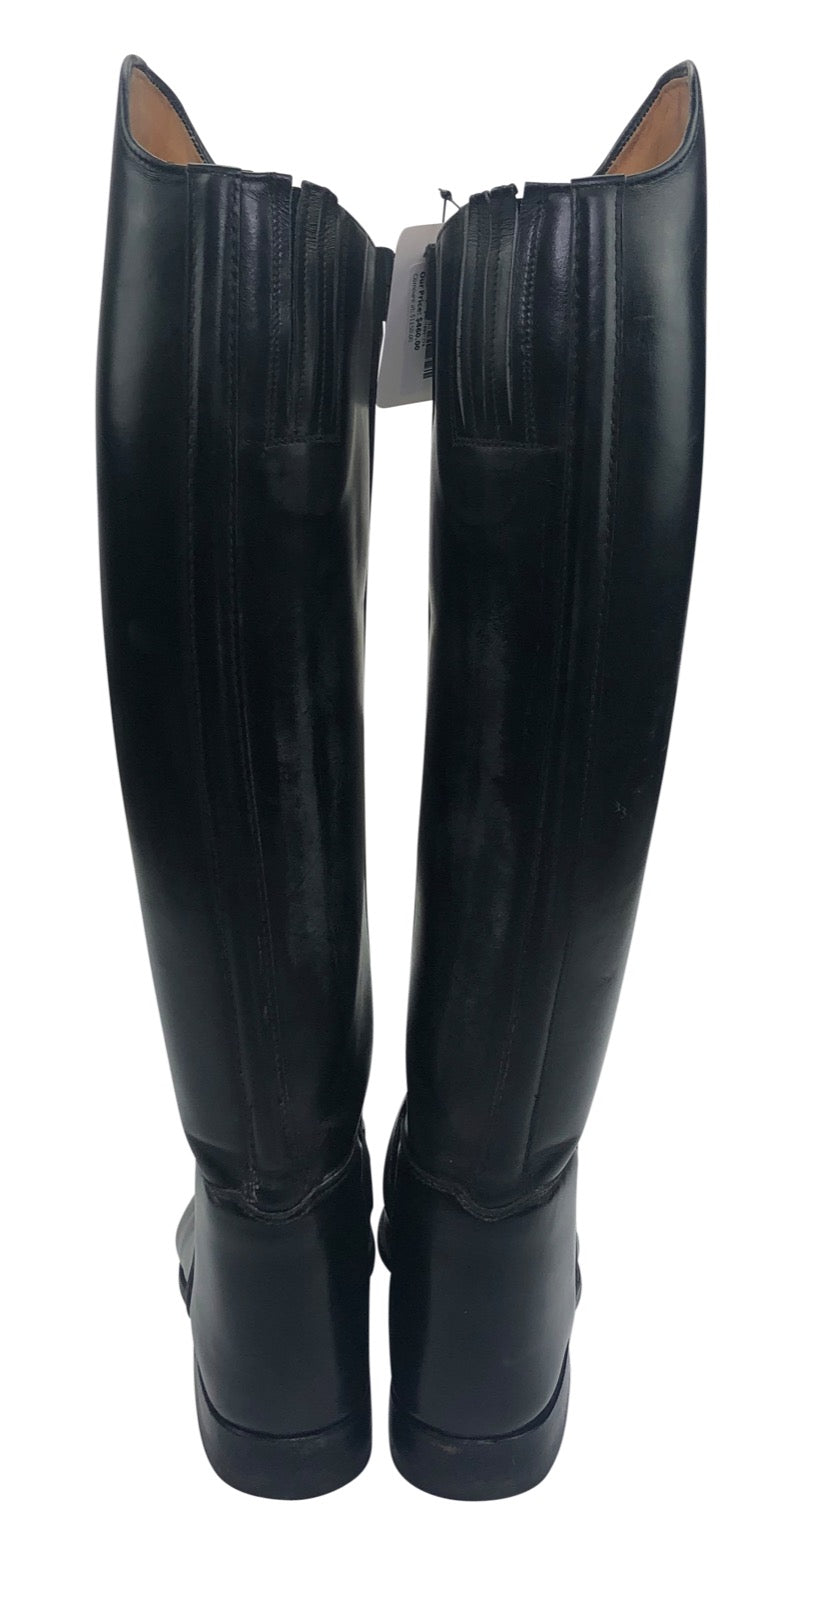 back view of Konigs Dressage Boot in Black